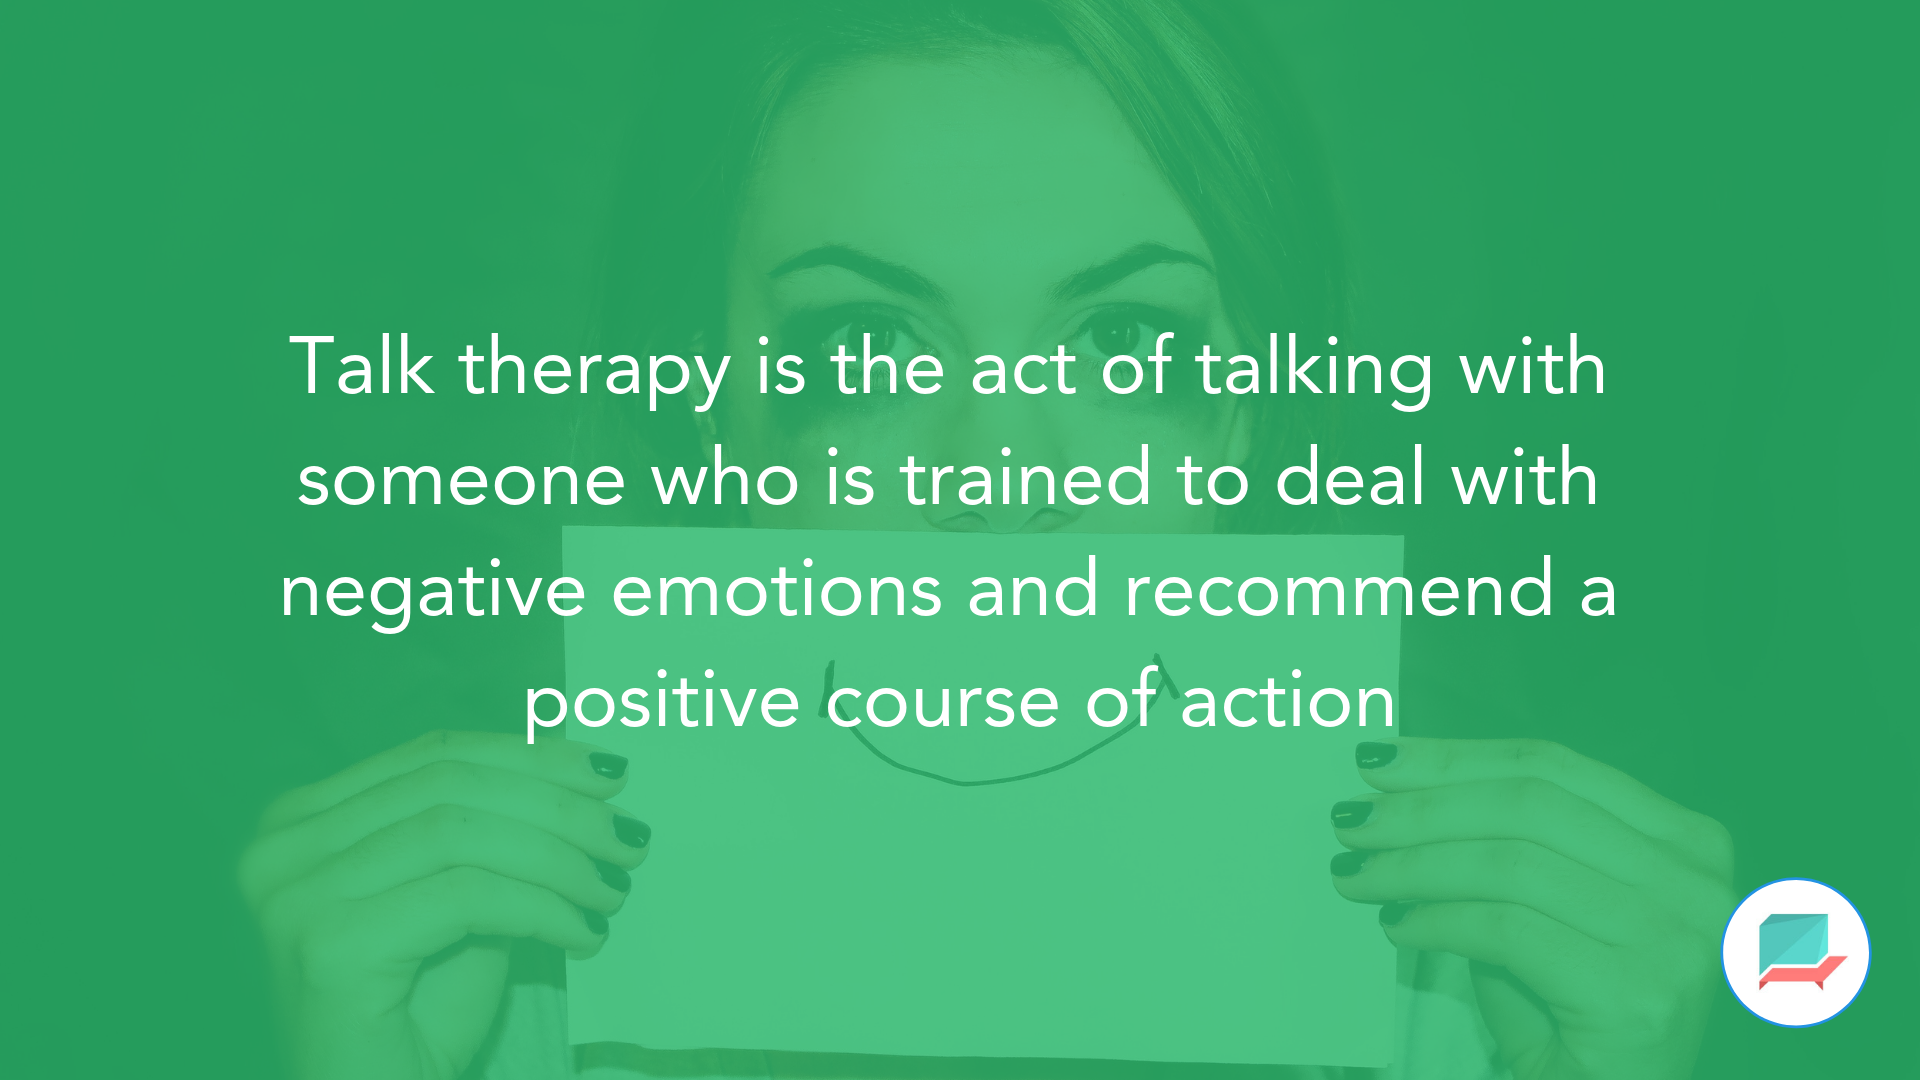 How to Get Started with Talk Therapy - for Depressive Symptoms